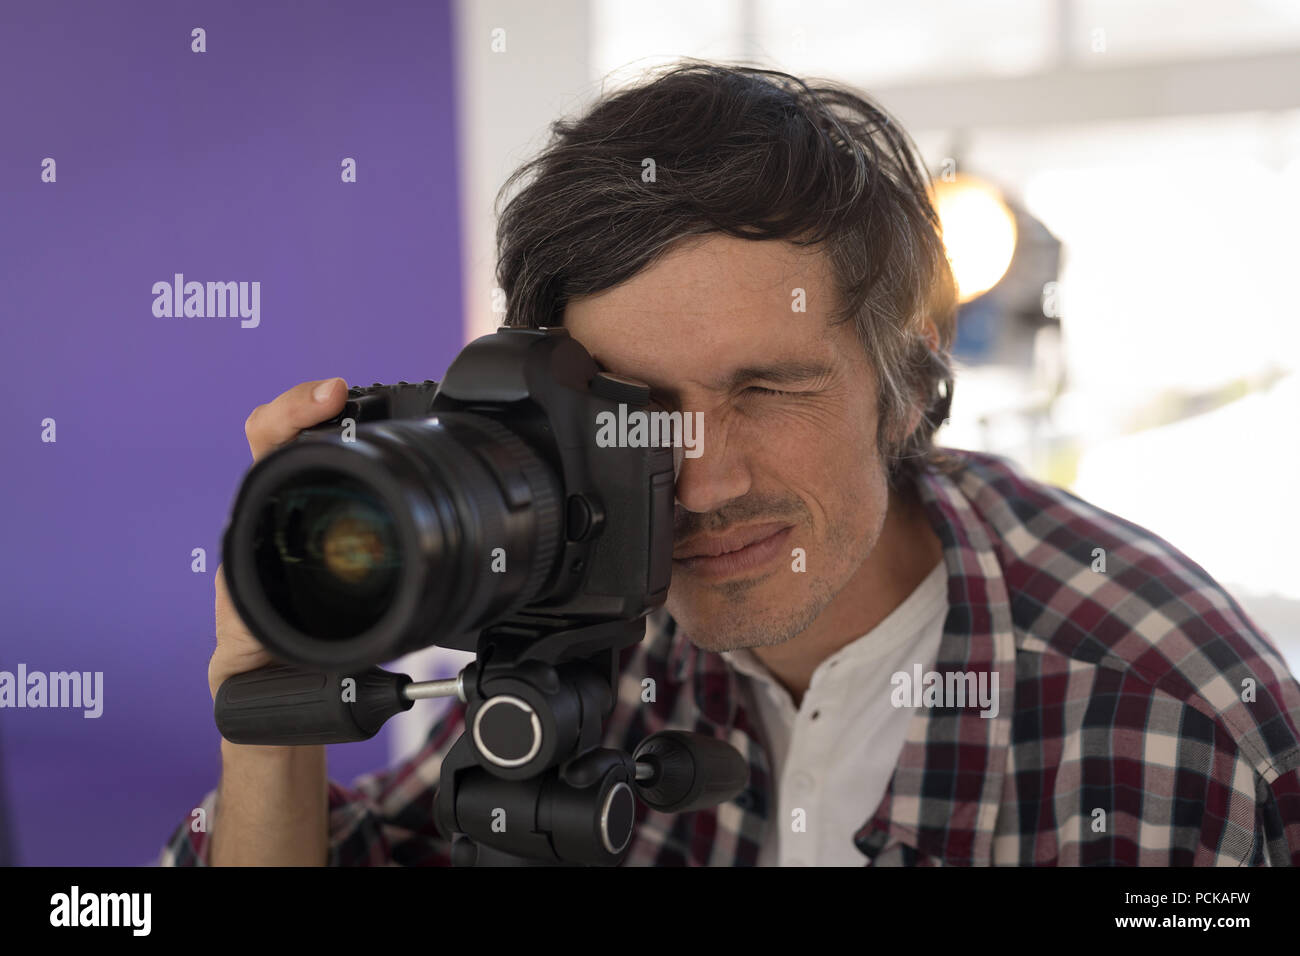 Photographer taking pictures in the studio - Stock Image